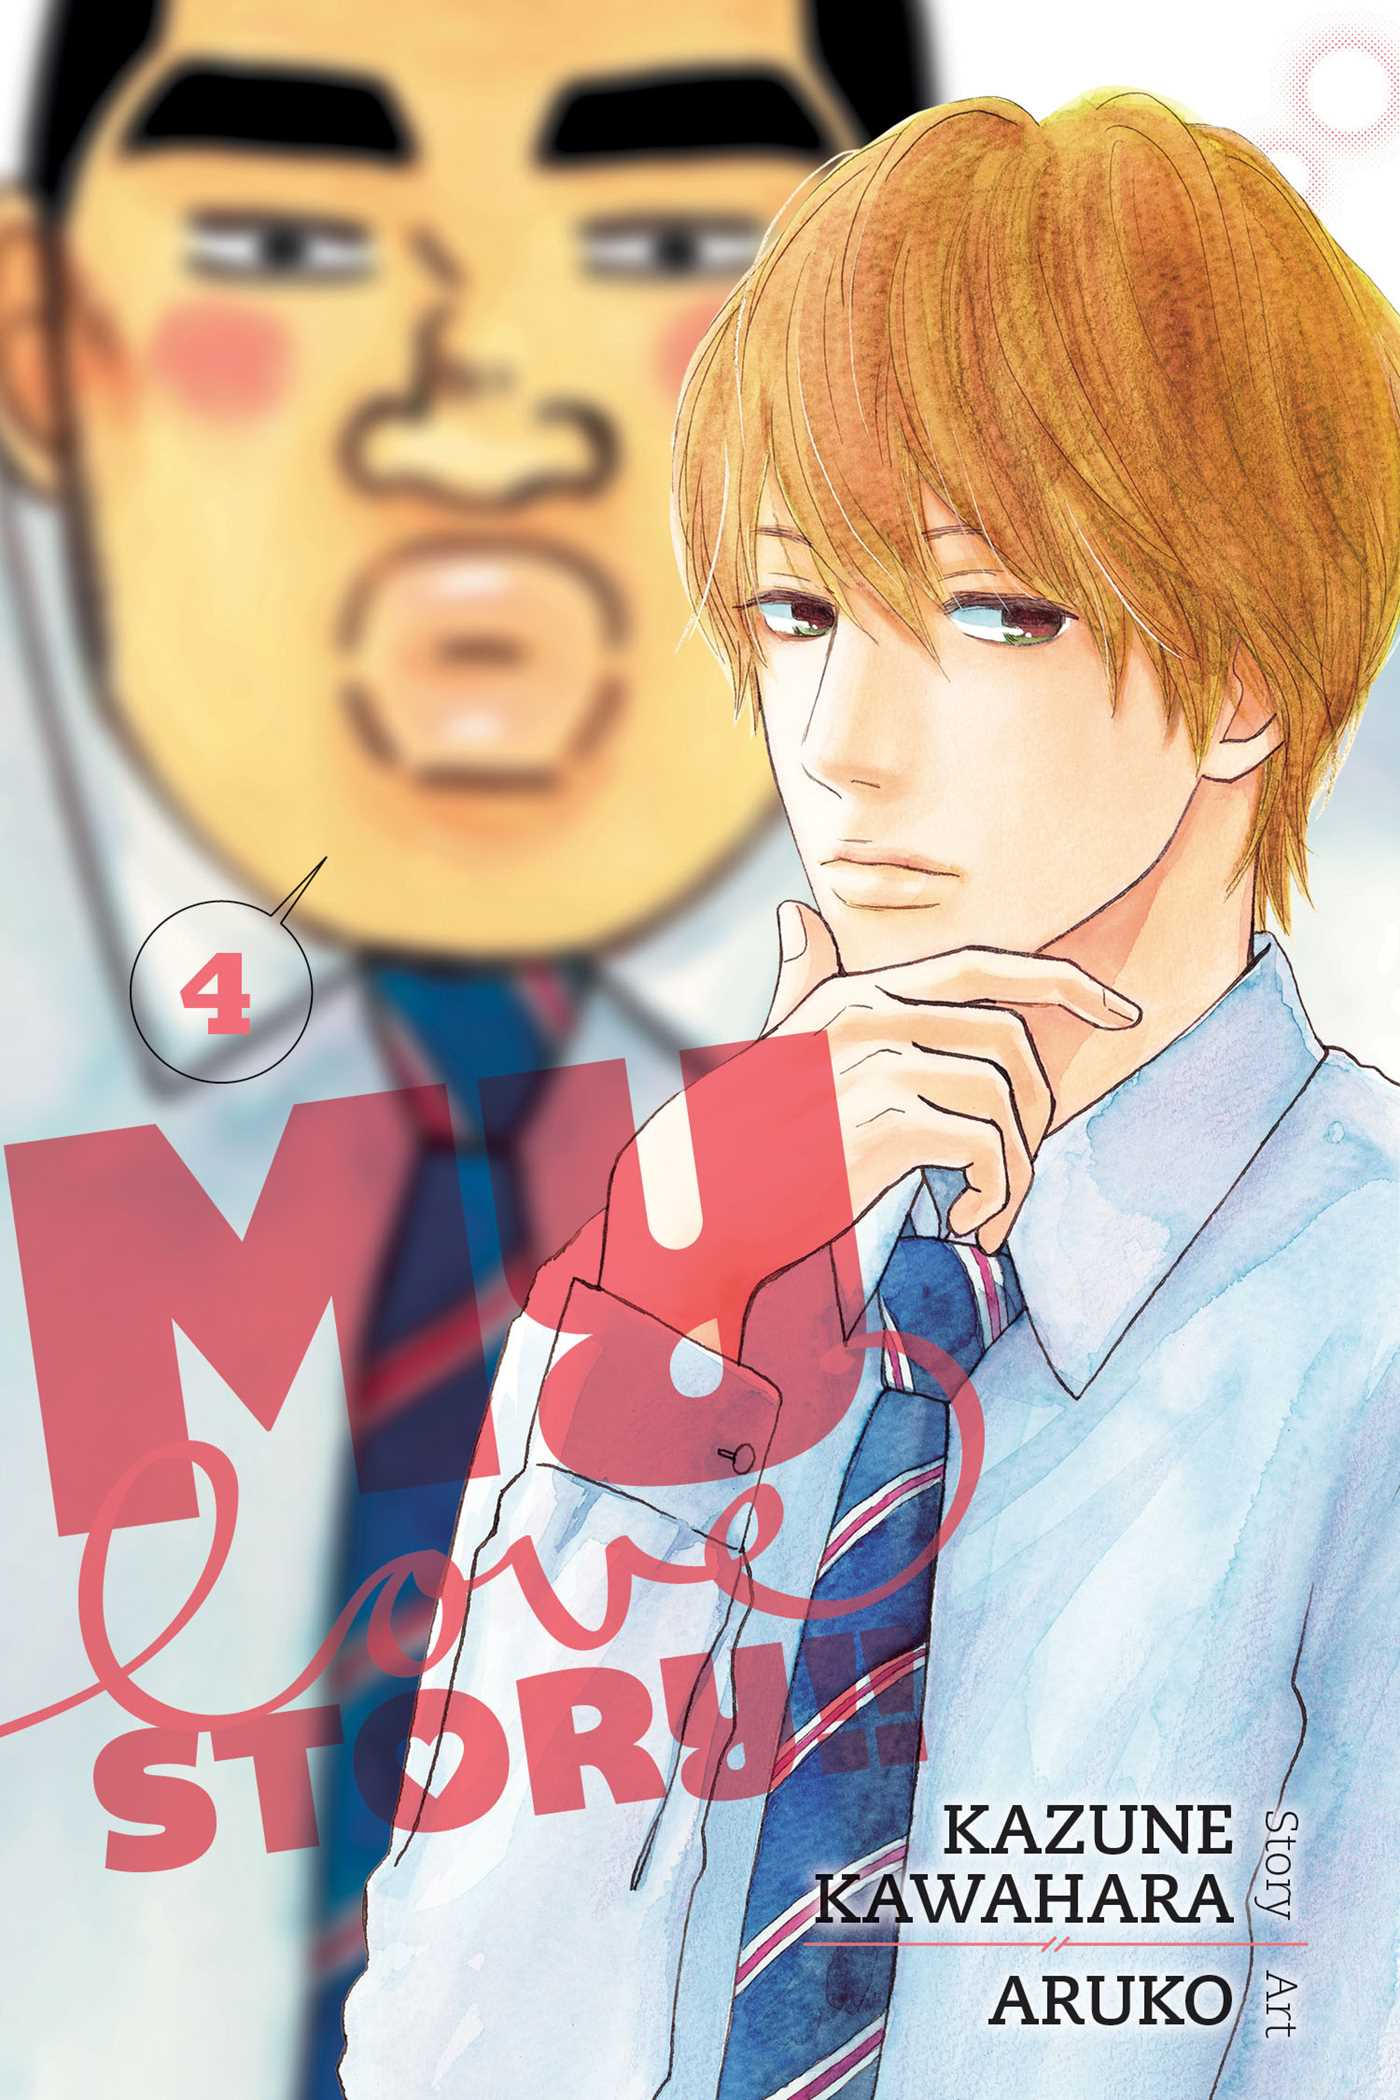 takeo senior personals Watch my love story episode 5 online at anime-planet ai, sunakawa's sister three years his senior, is shocked to learn during a home visit that takeo is dating.